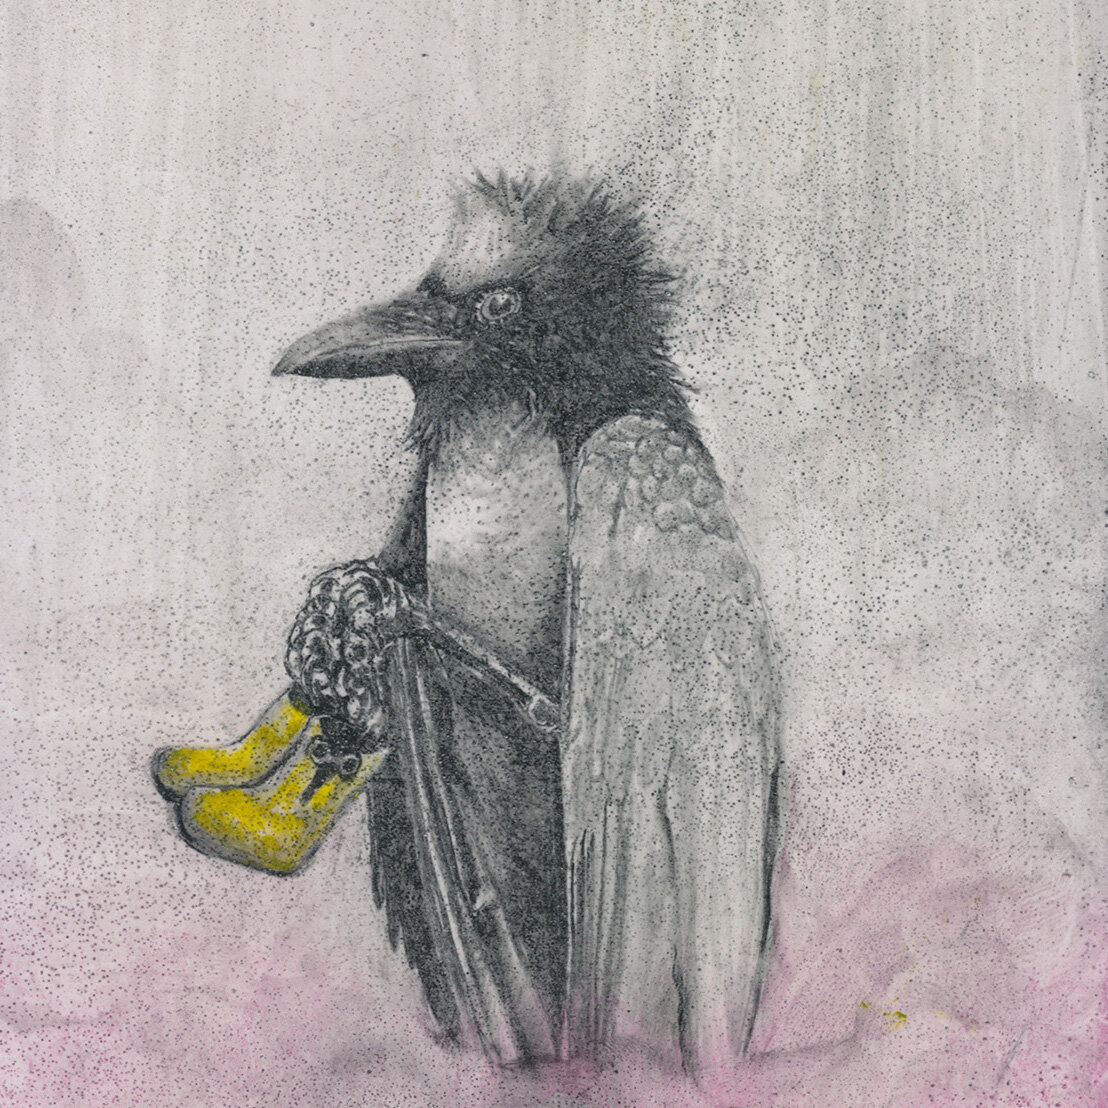 detail, panel from Ergo Sum: A Crow a Day